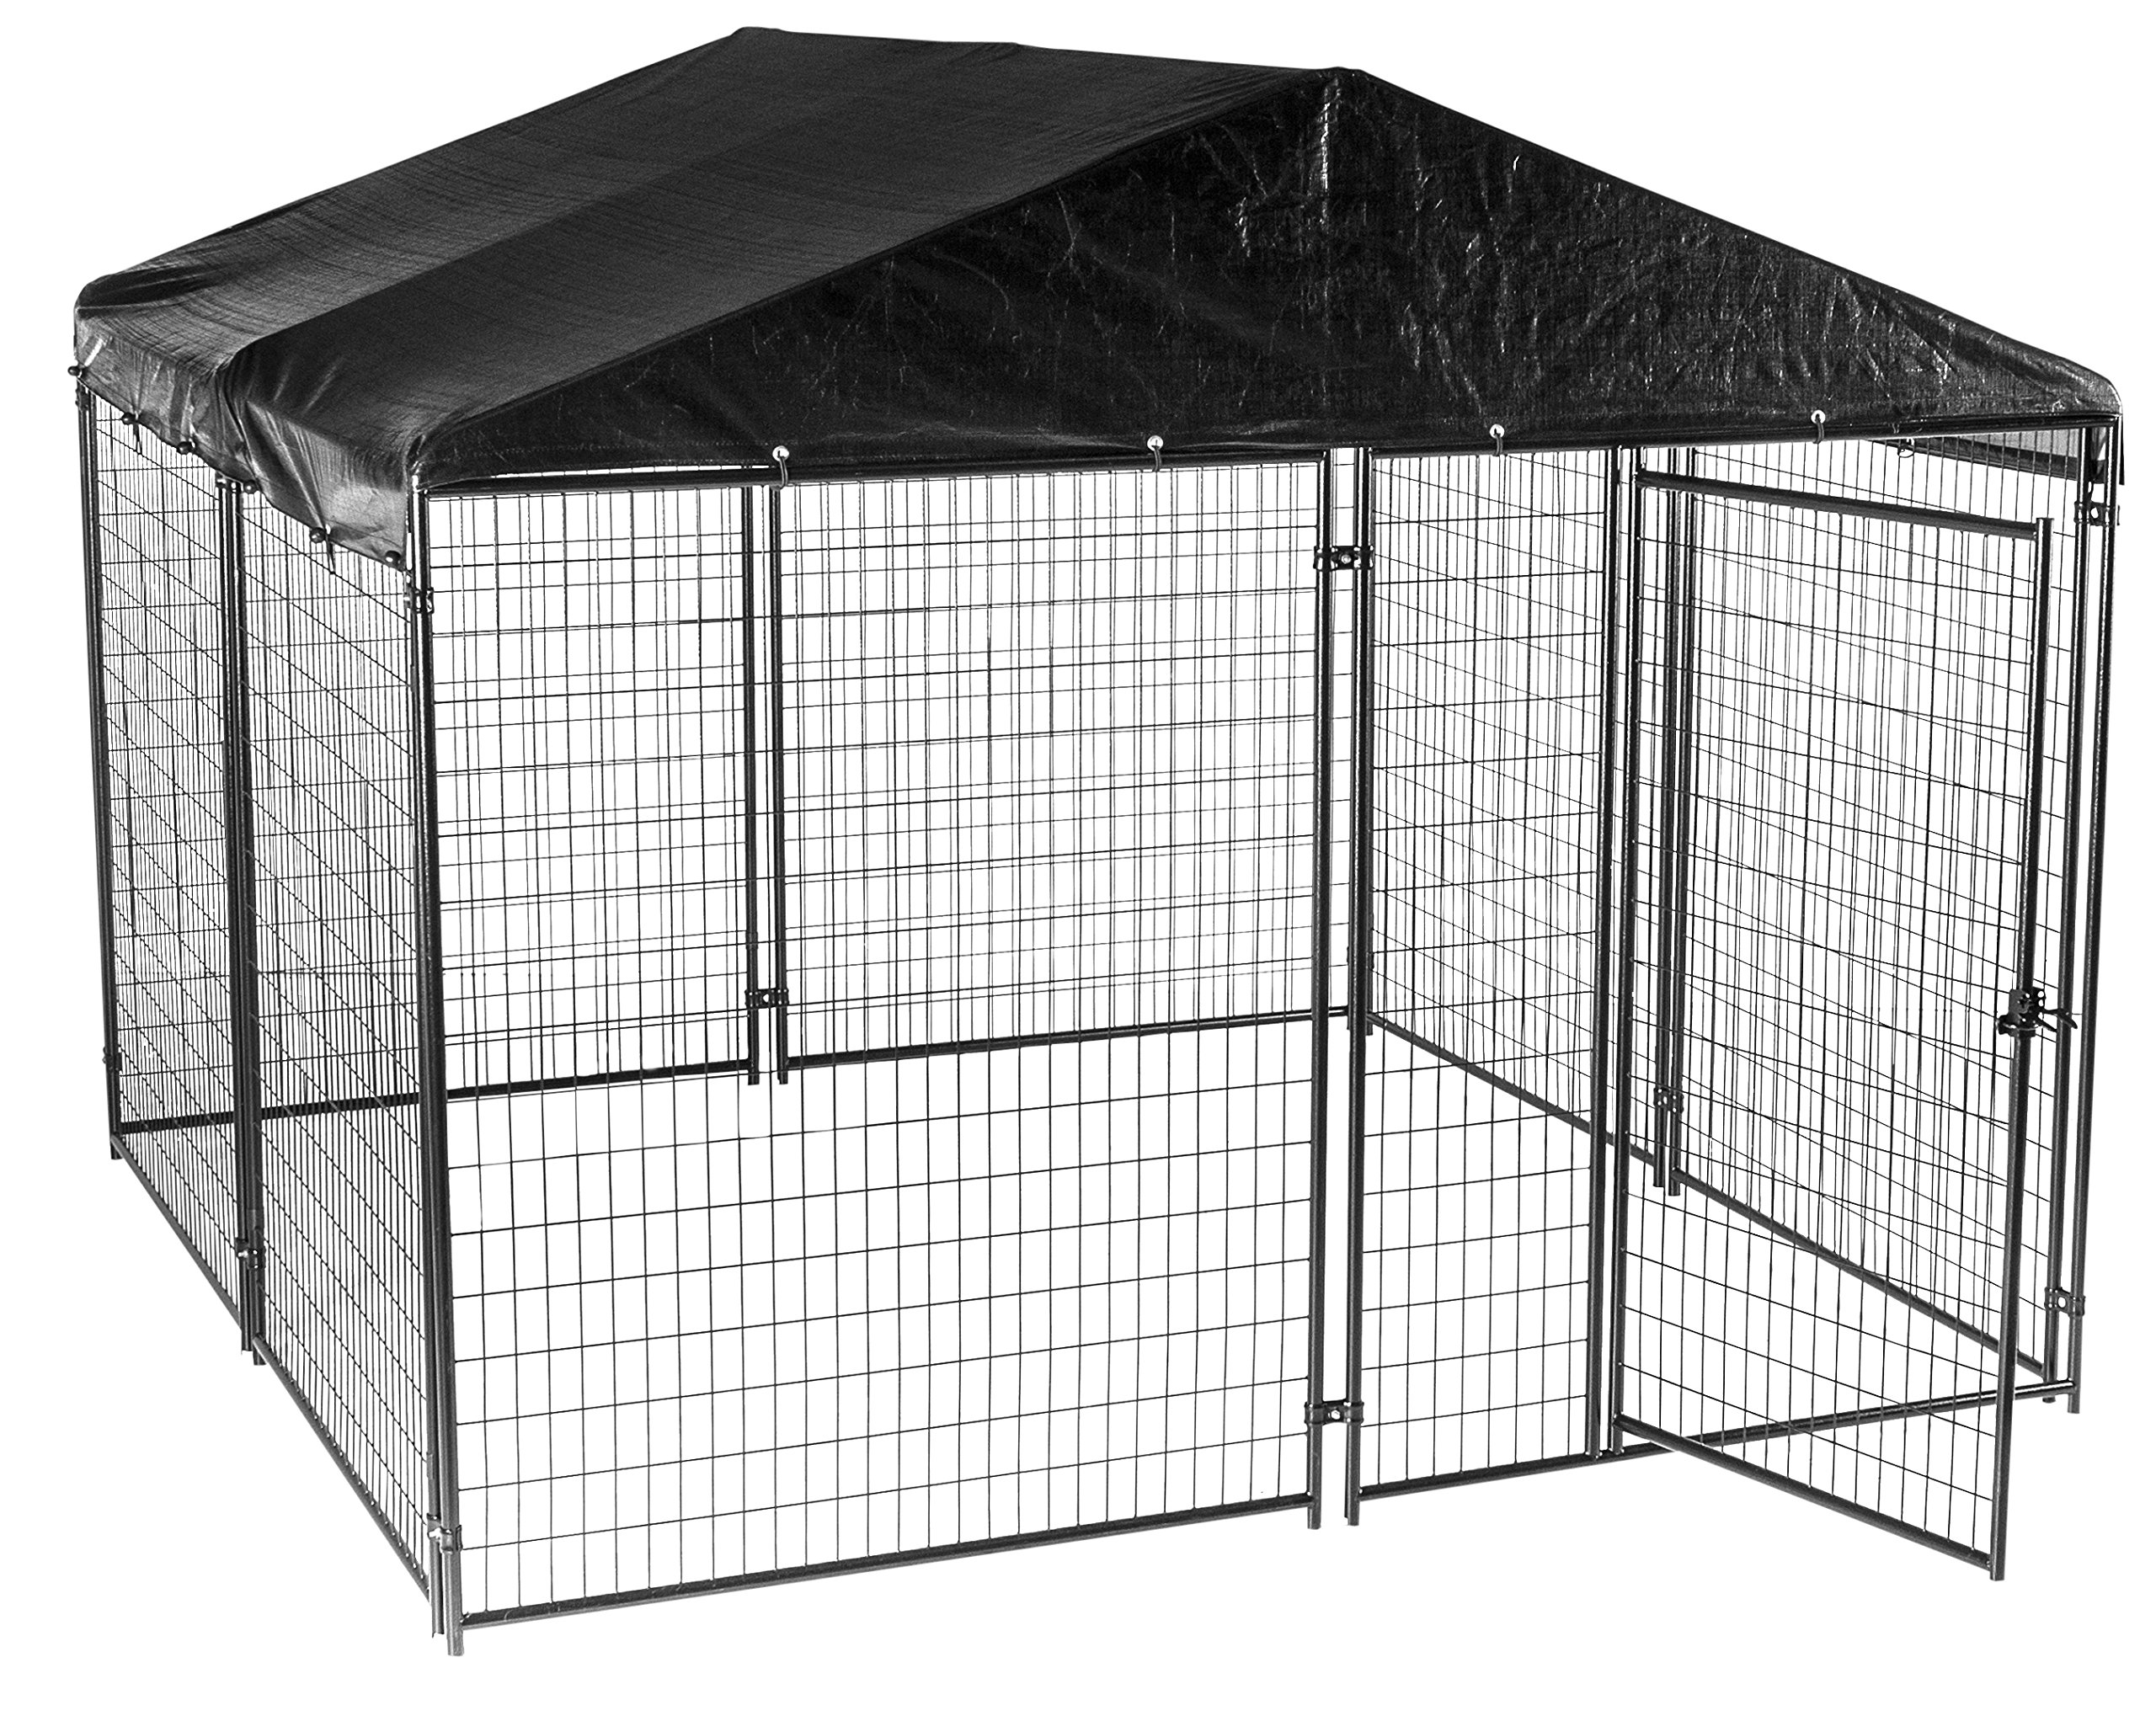 Lucky Dog Modular Box Kennel w/Roof and Cover (6'H x 10'L x 10'W) 207 lbs by Lucky Dog